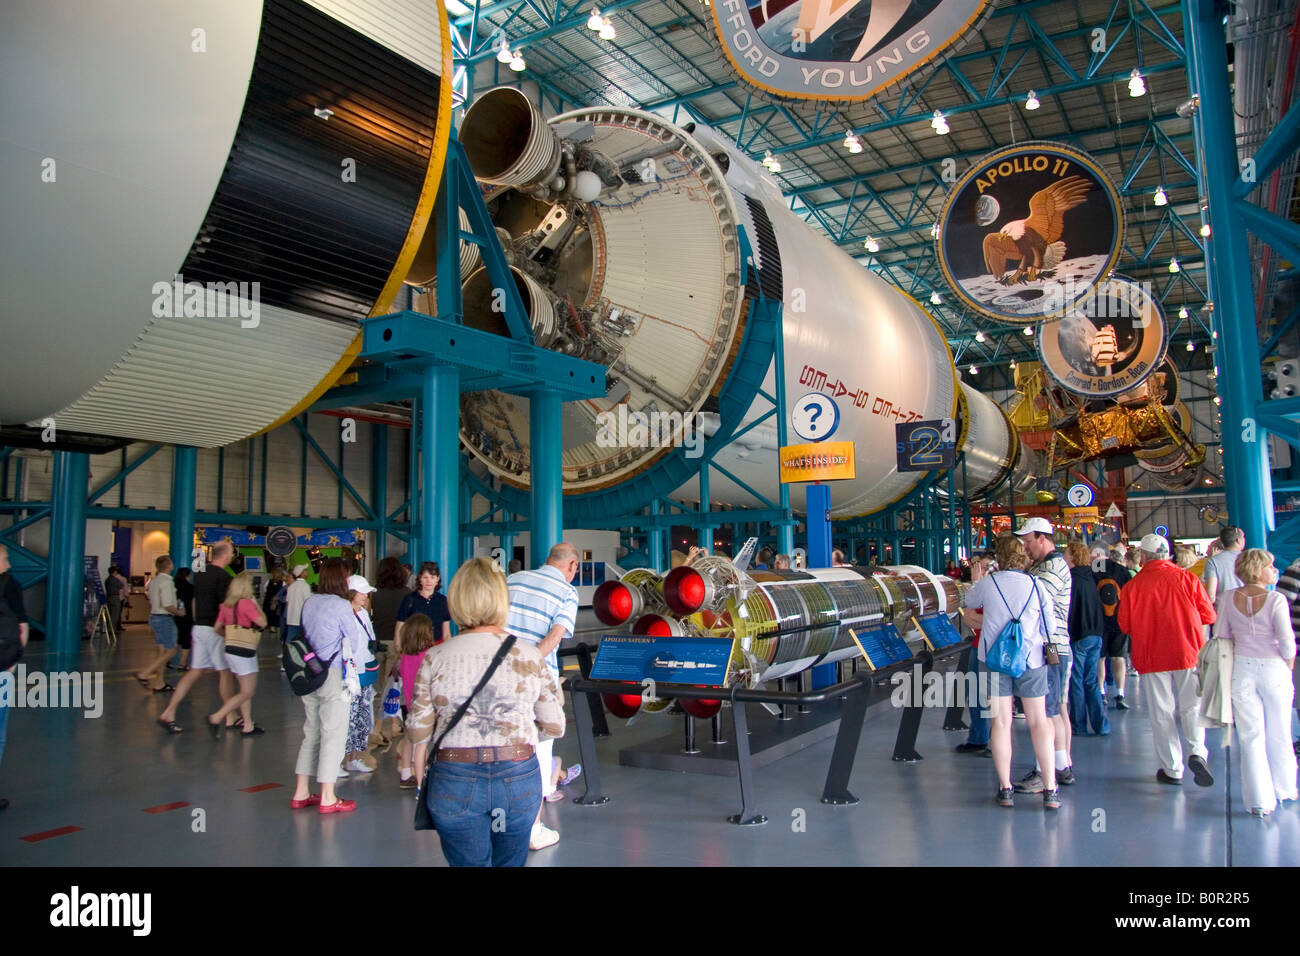 apollo 5 kennedy space center - photo #12